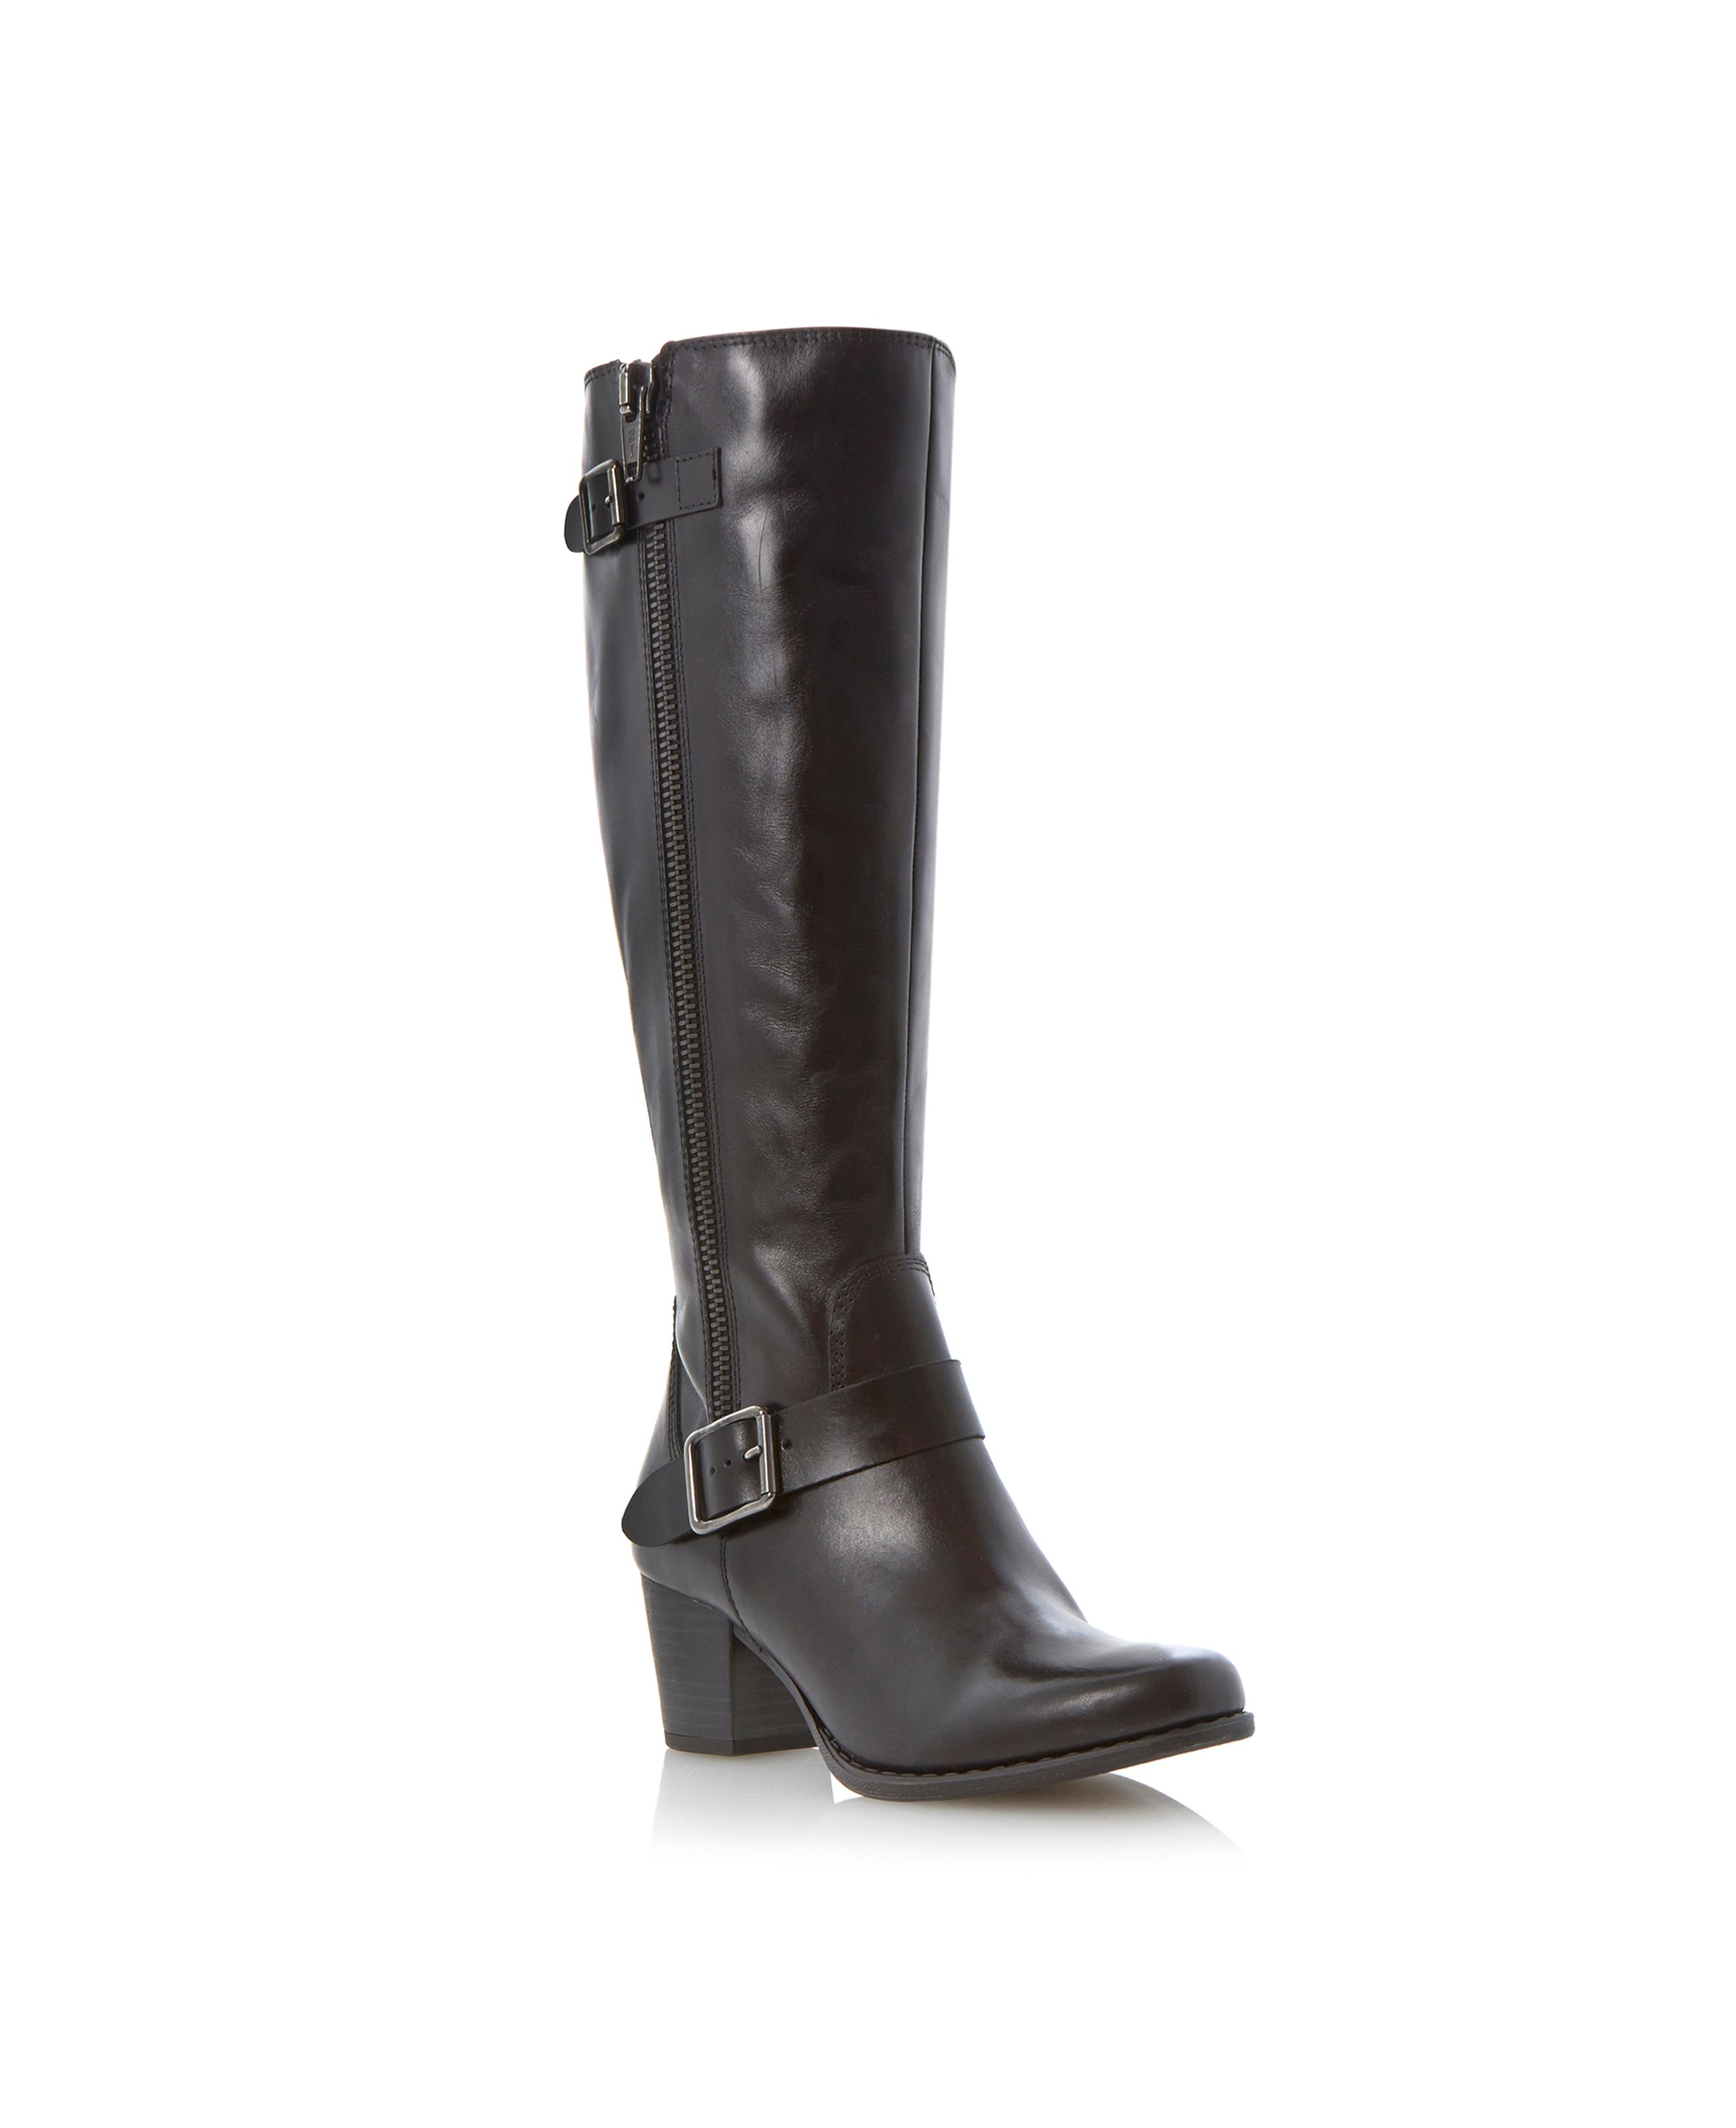 Tylon double buckle zip boots